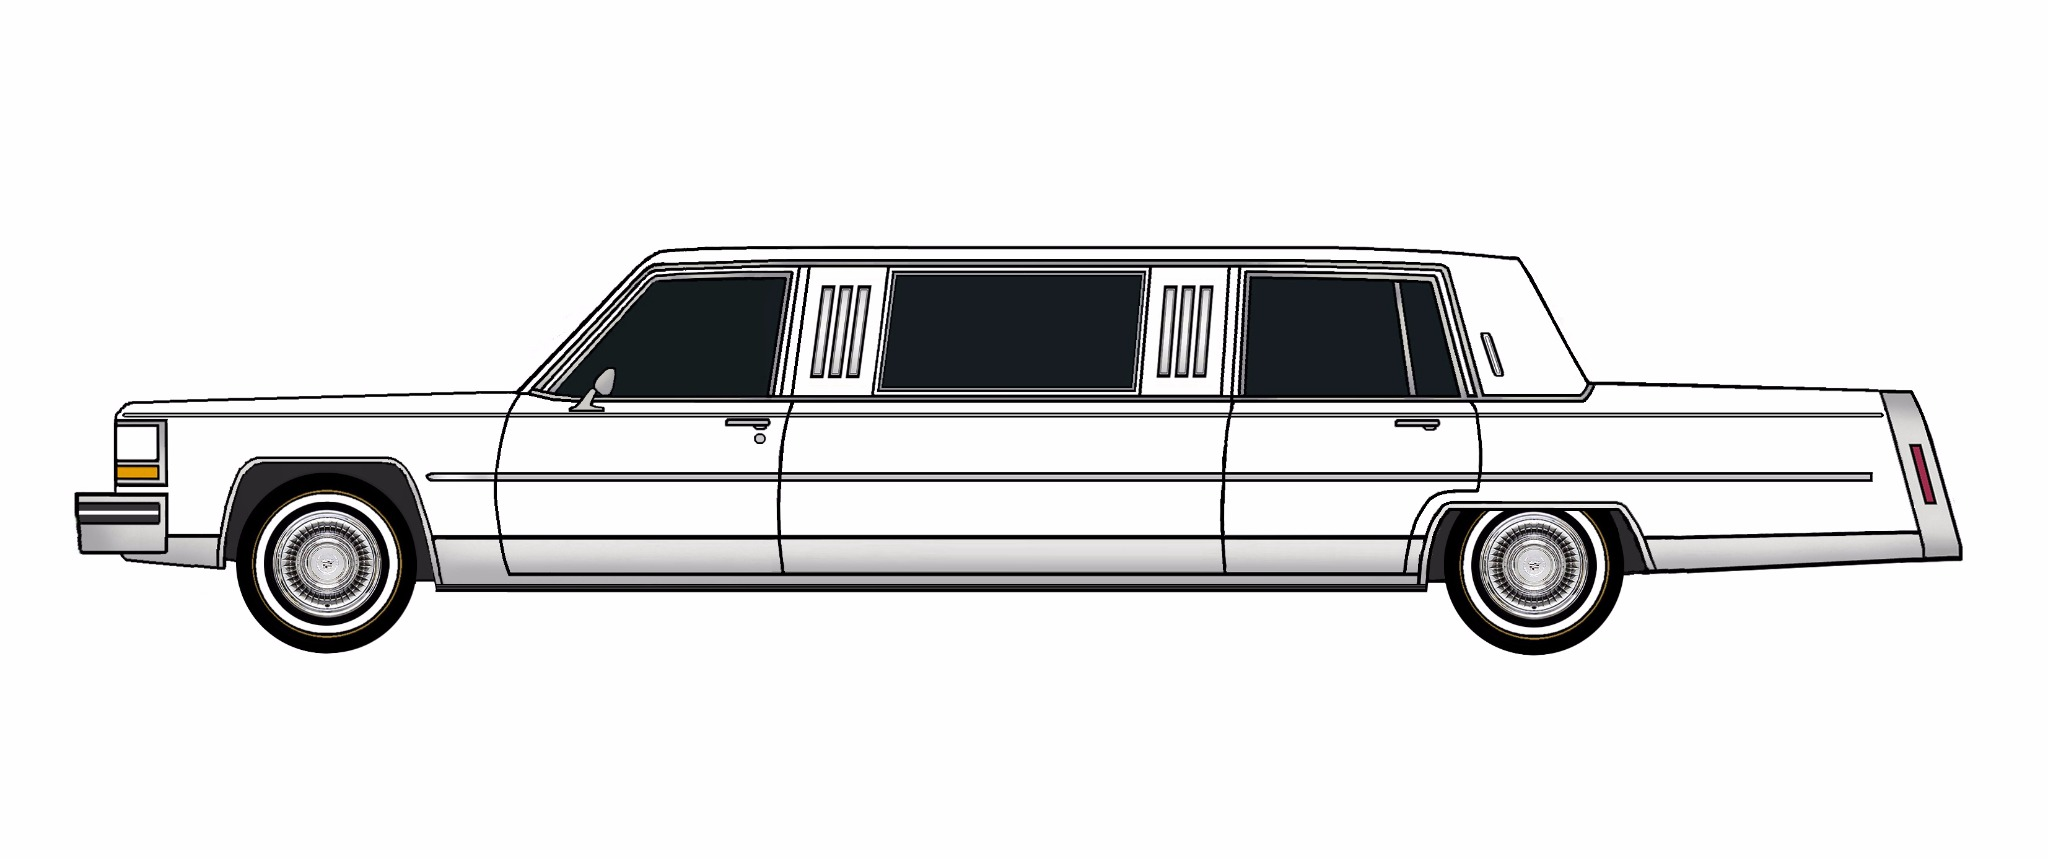 1984 Cadillac Fleetwood Brougham Limo FREE MODEL